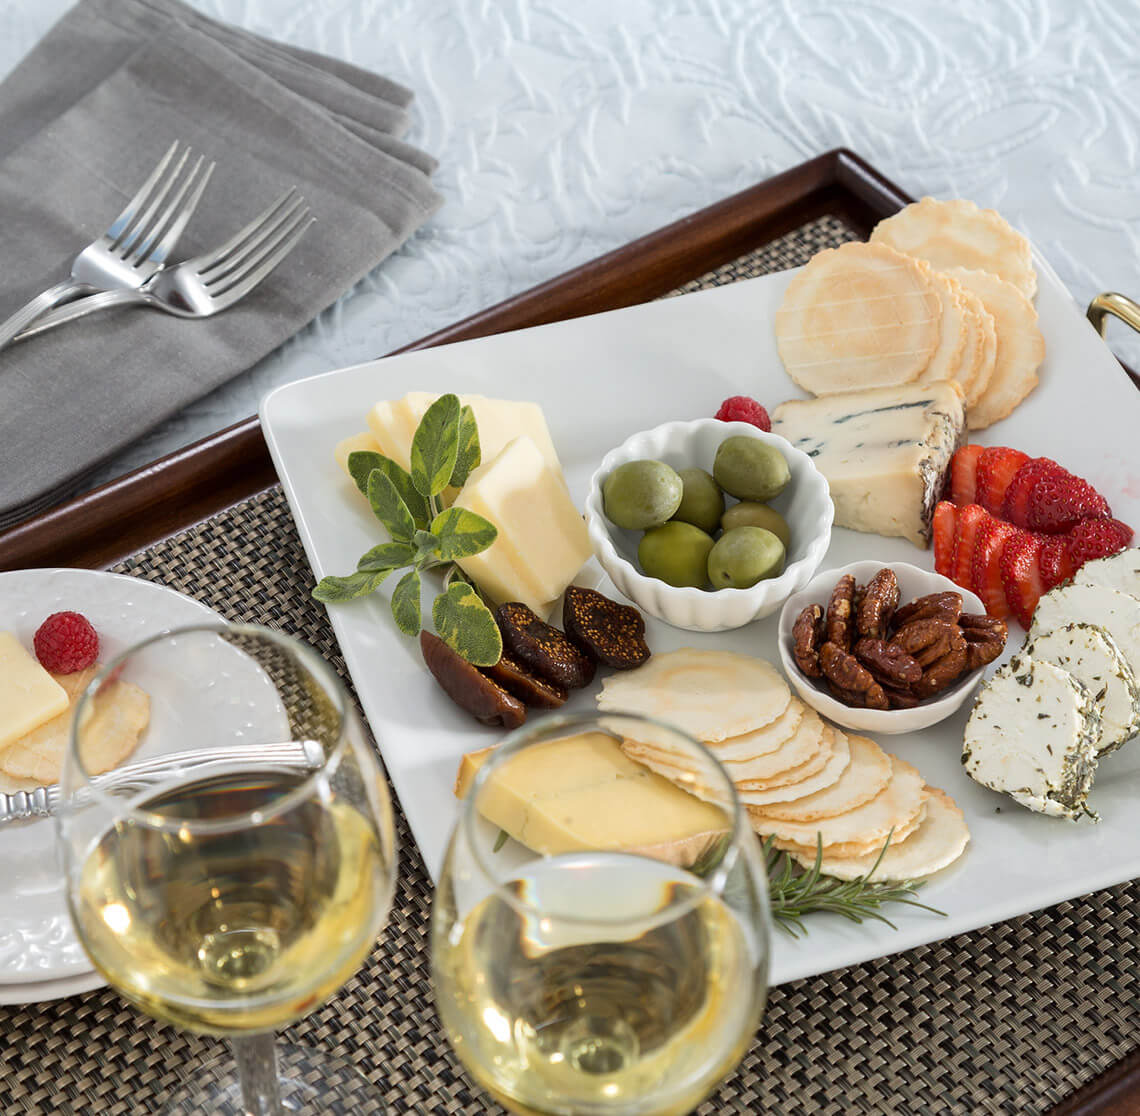 Cheese plate and wine